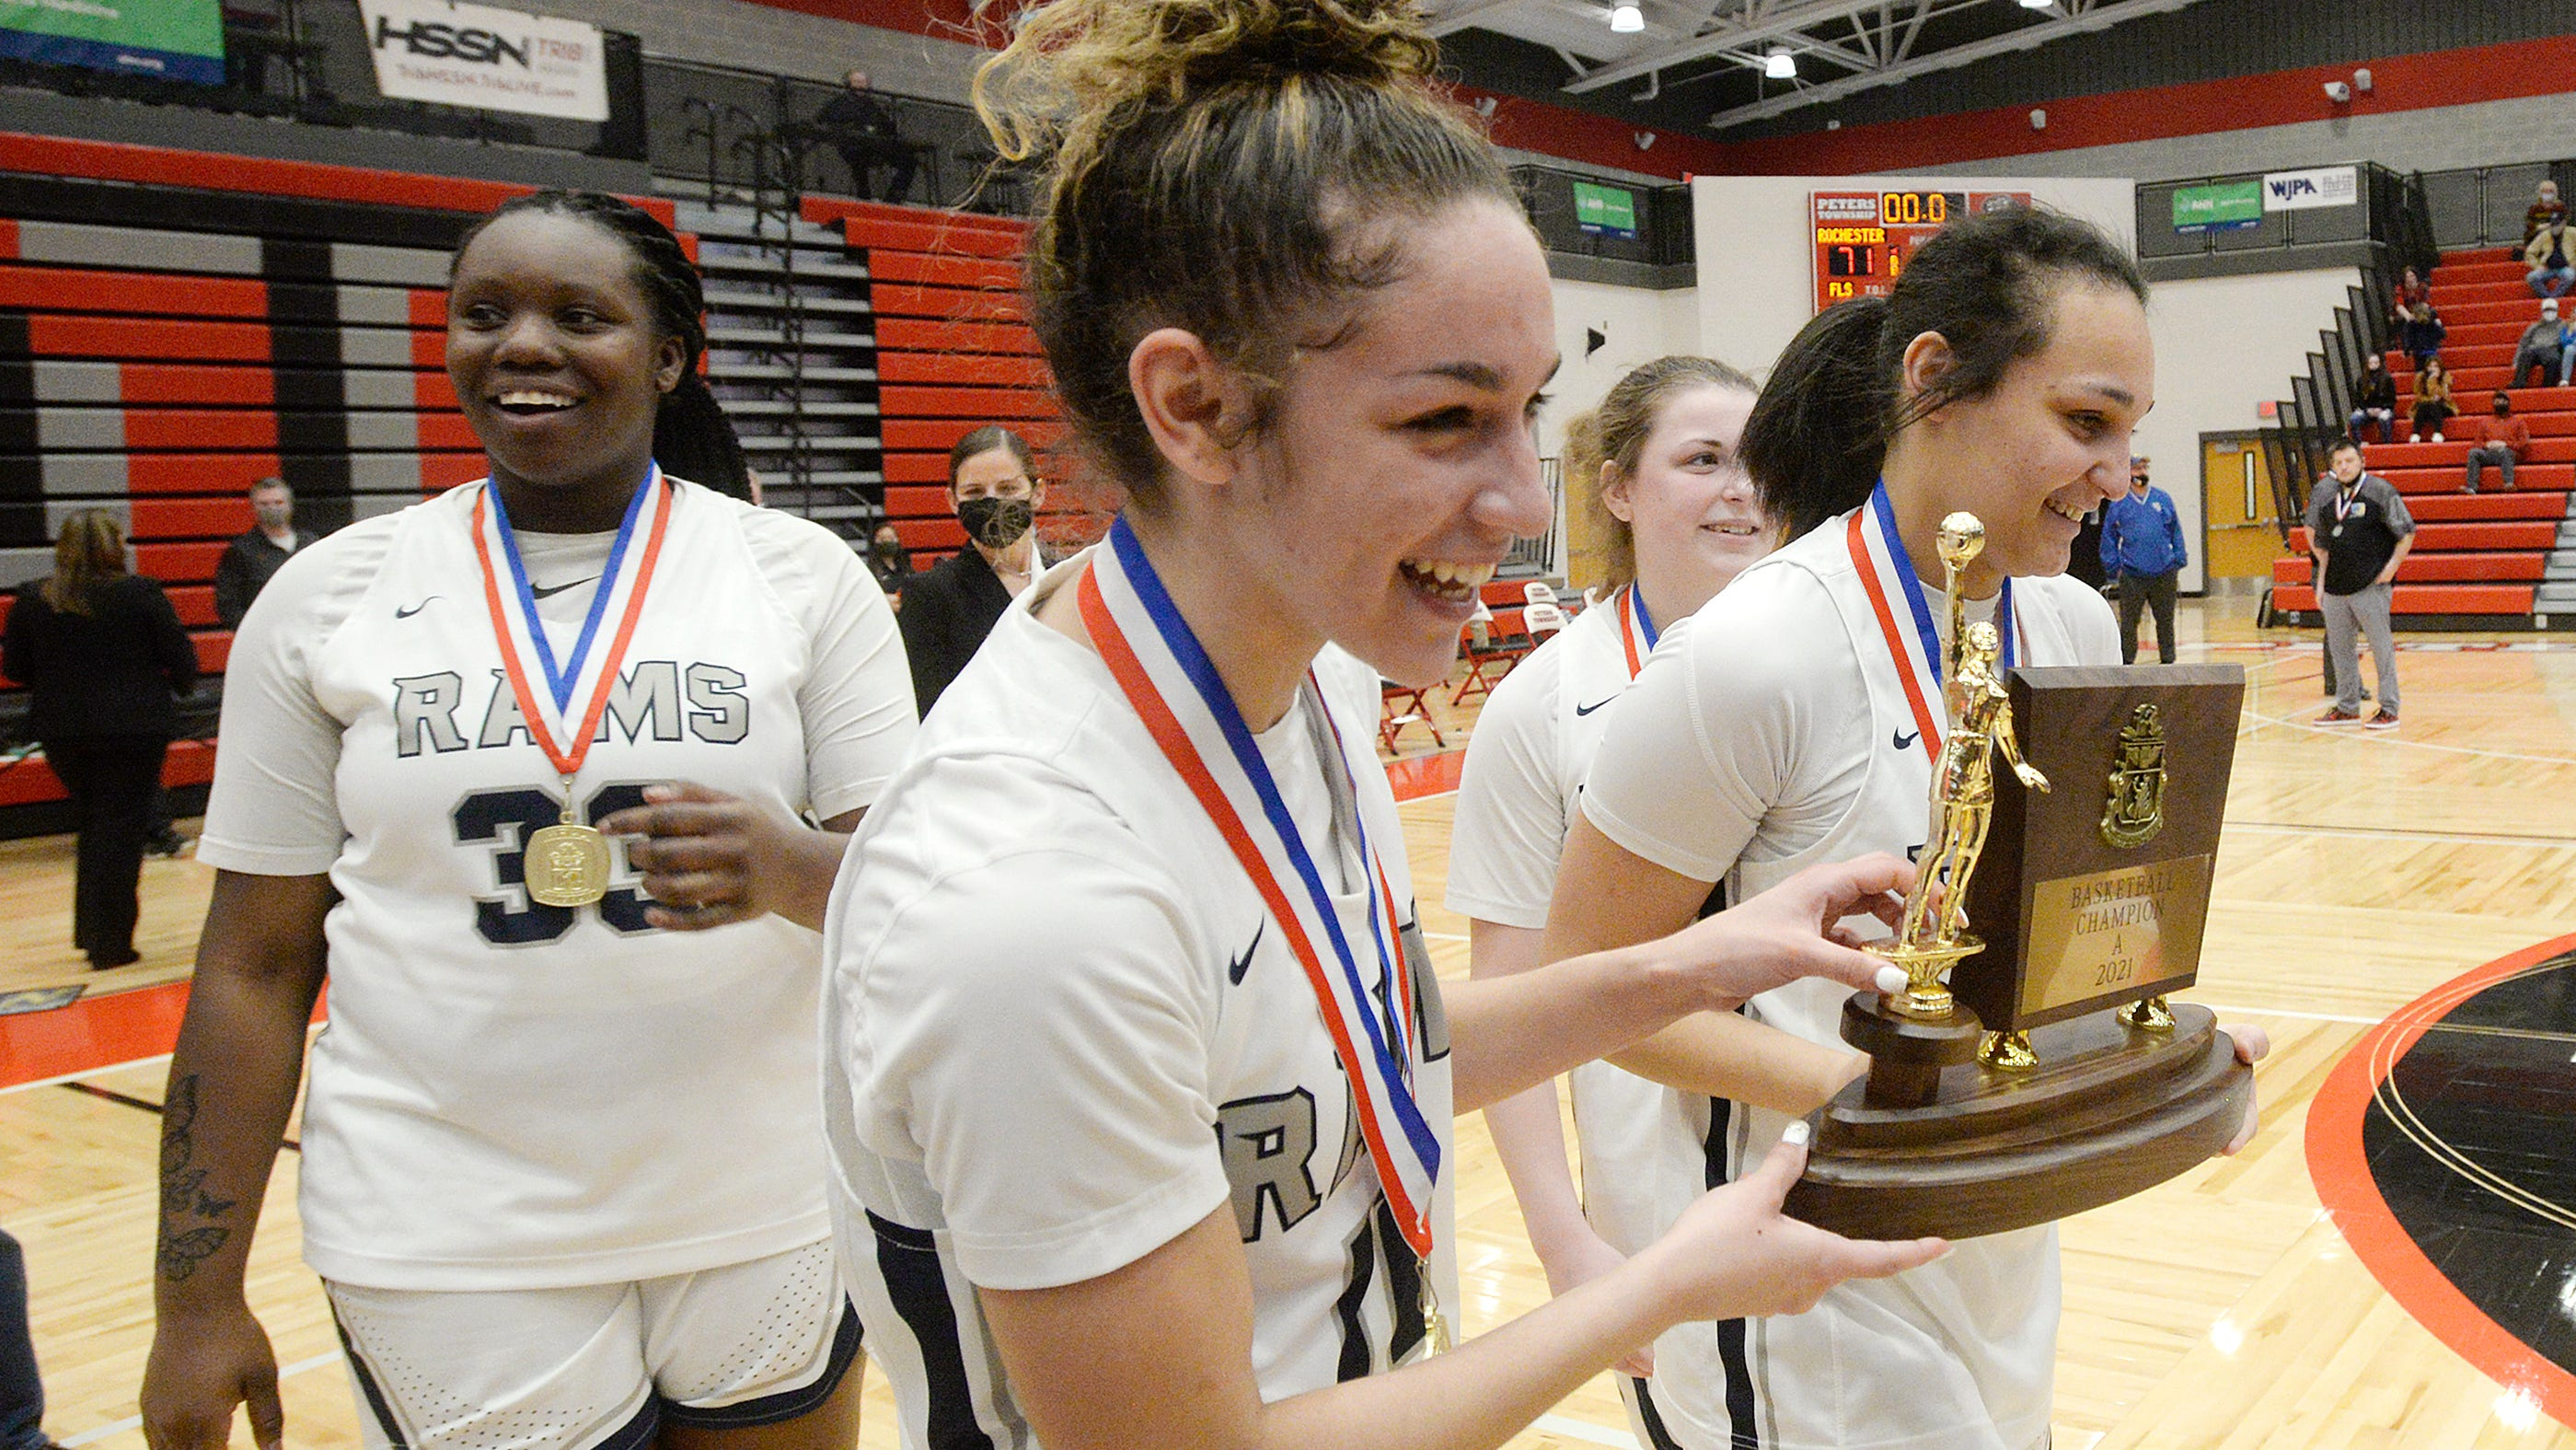 The Times' 2021 Girls Basketball Players of the Year: Alexis Robison, Corynne Hauser back Rochester's three-peat